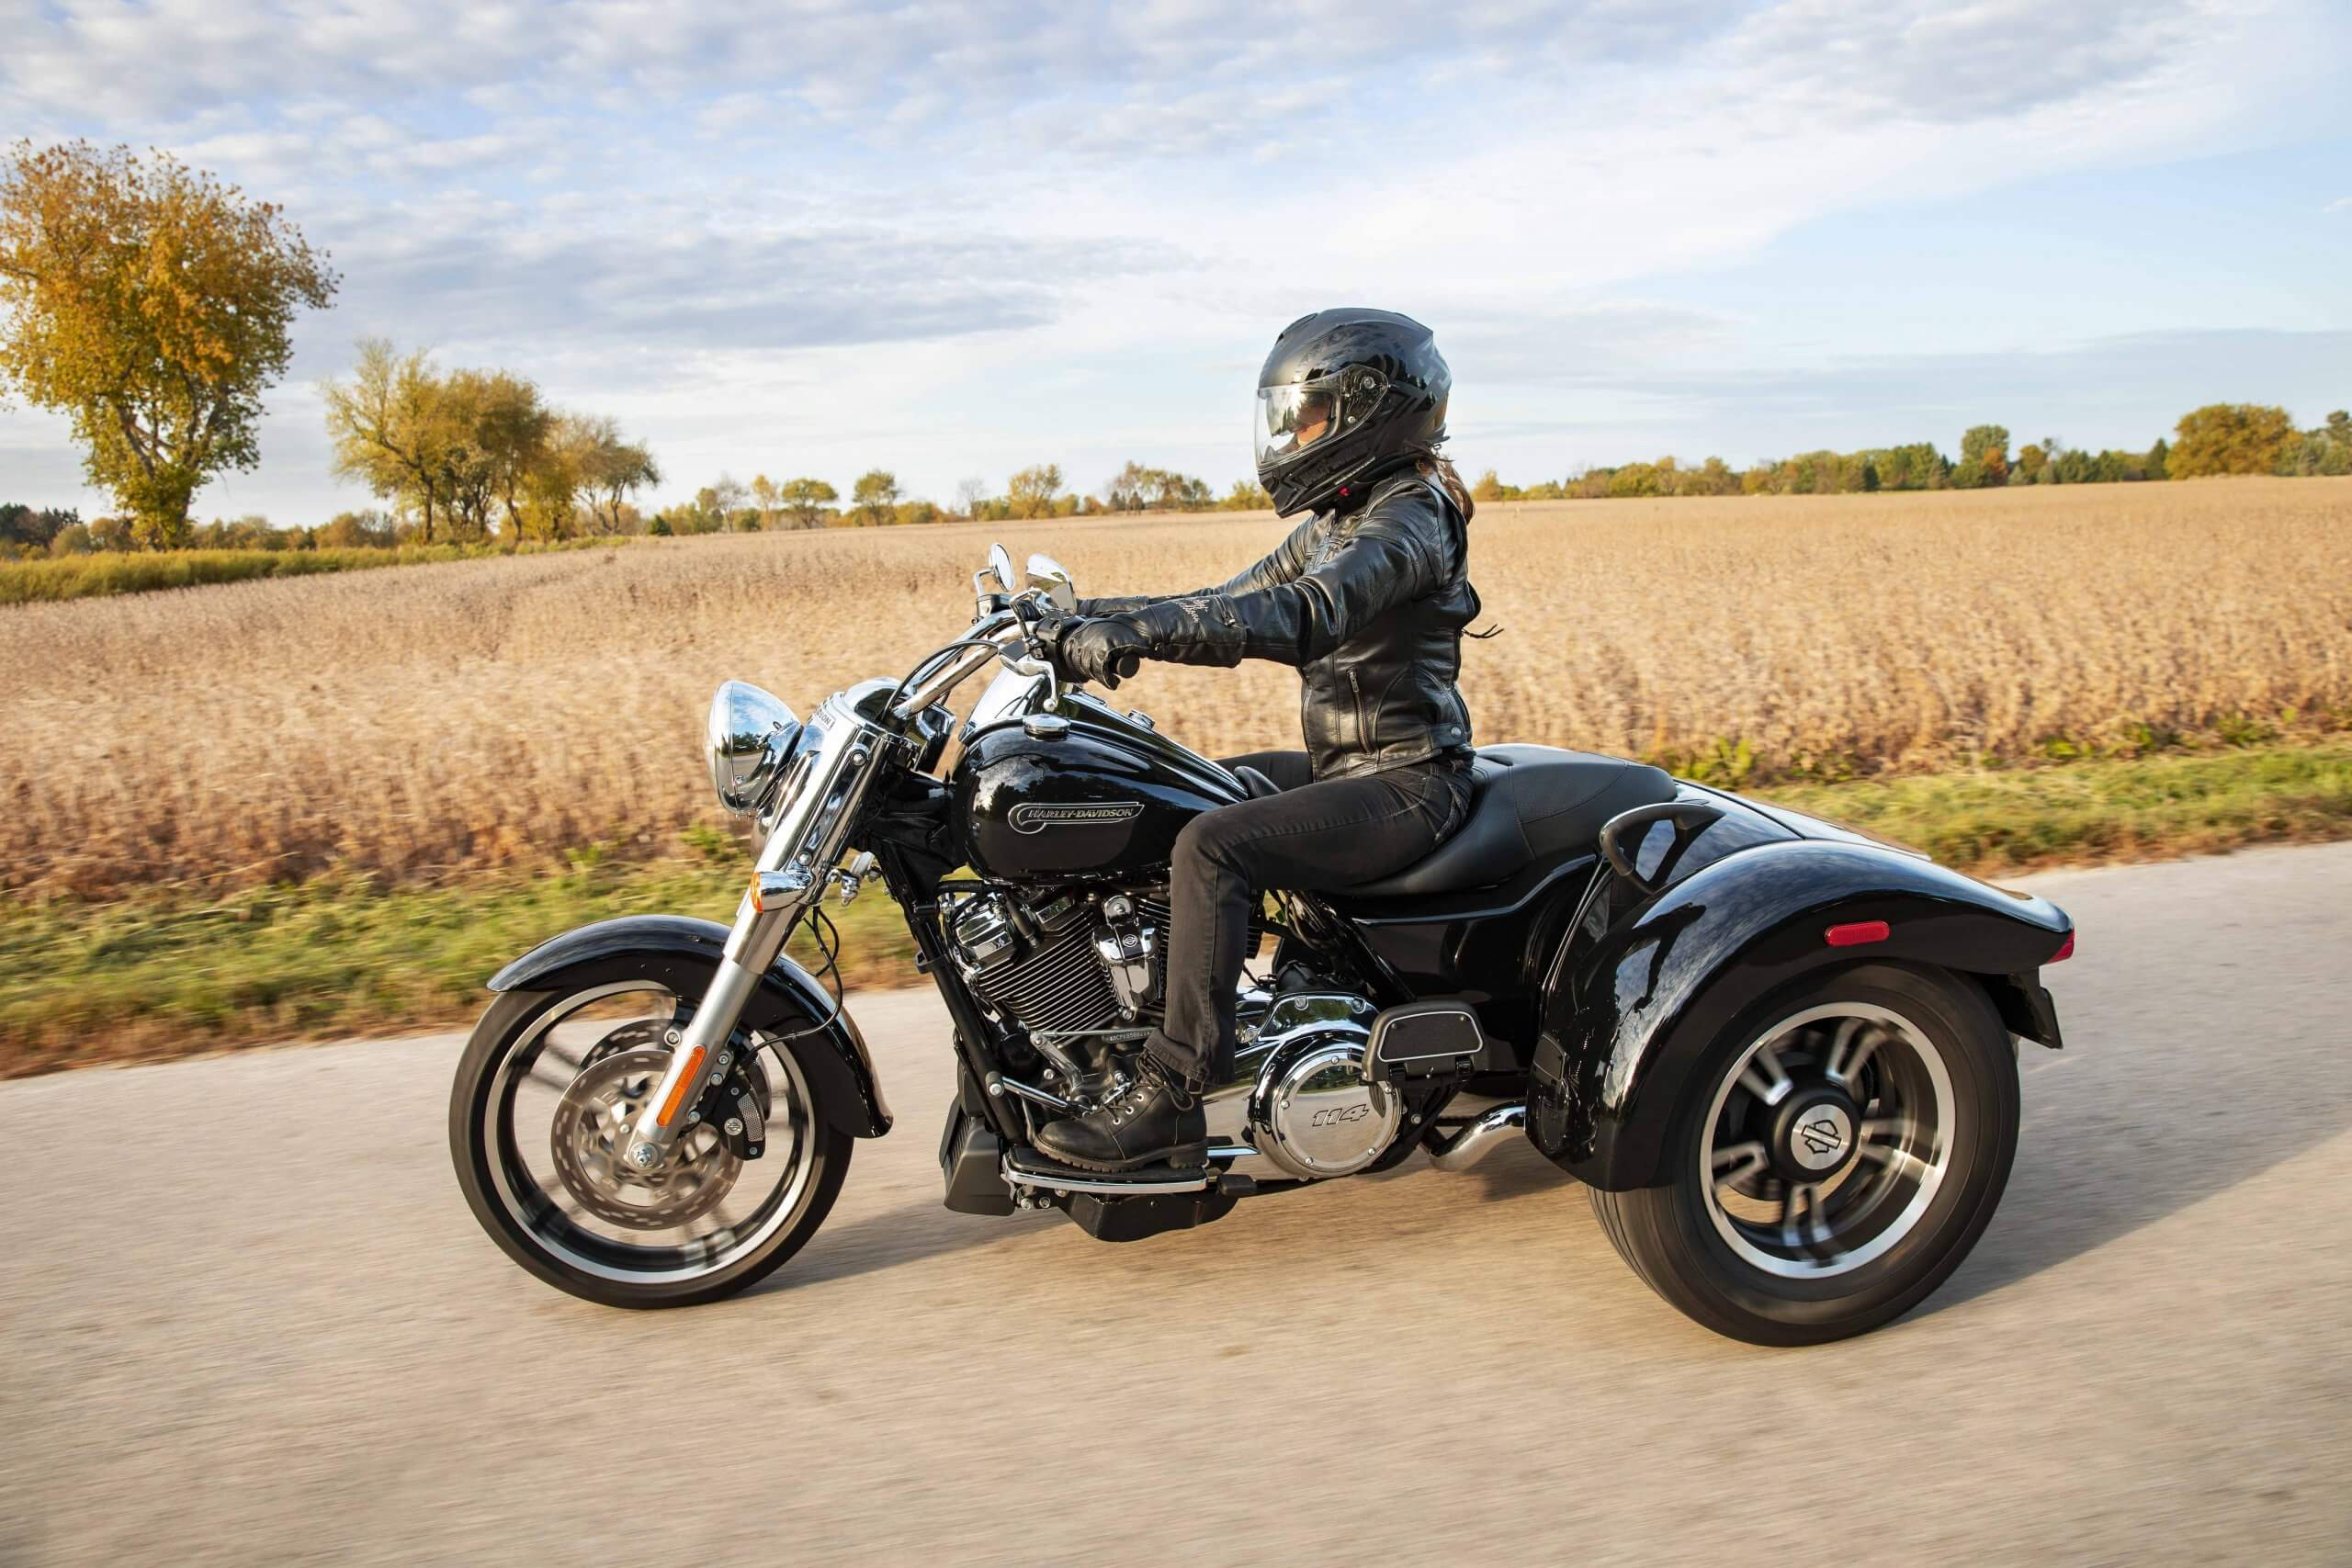 Milwaukee-Eight® 114 V-Twin engine and Enforcer wheels